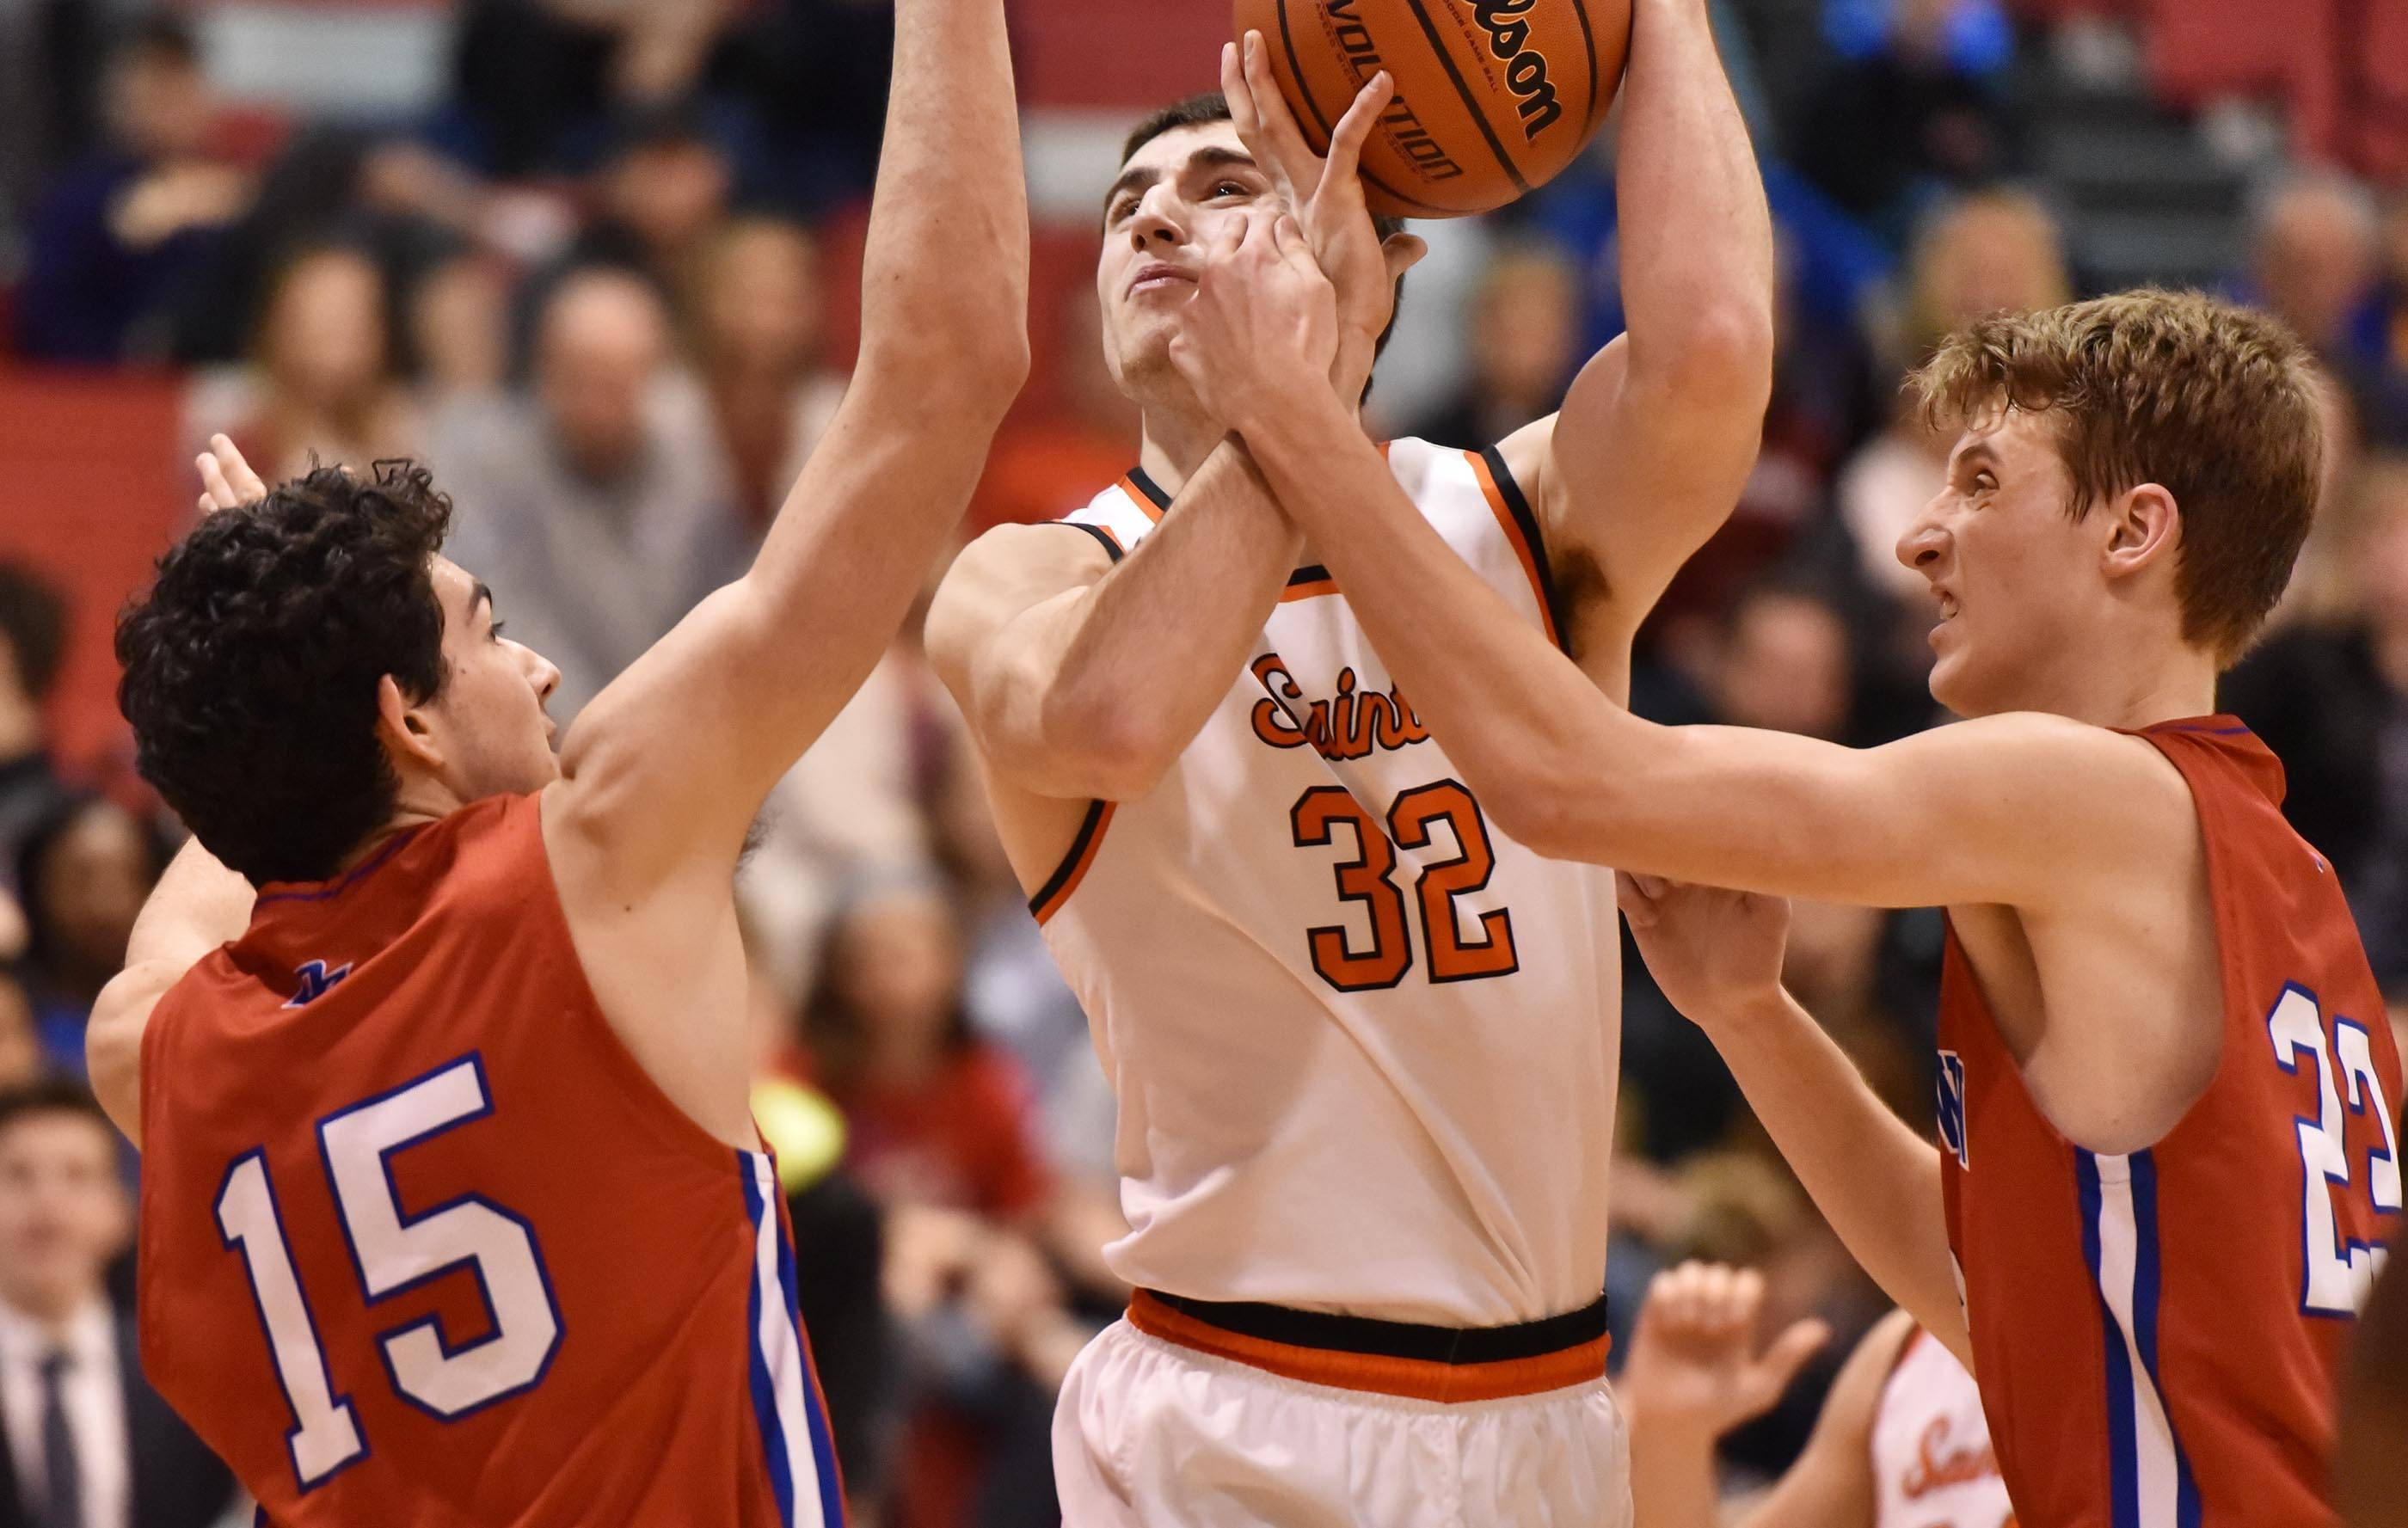 Images: St. Charles East vs. Dundee-Crown, boys Class 4A regional semifinal basketball